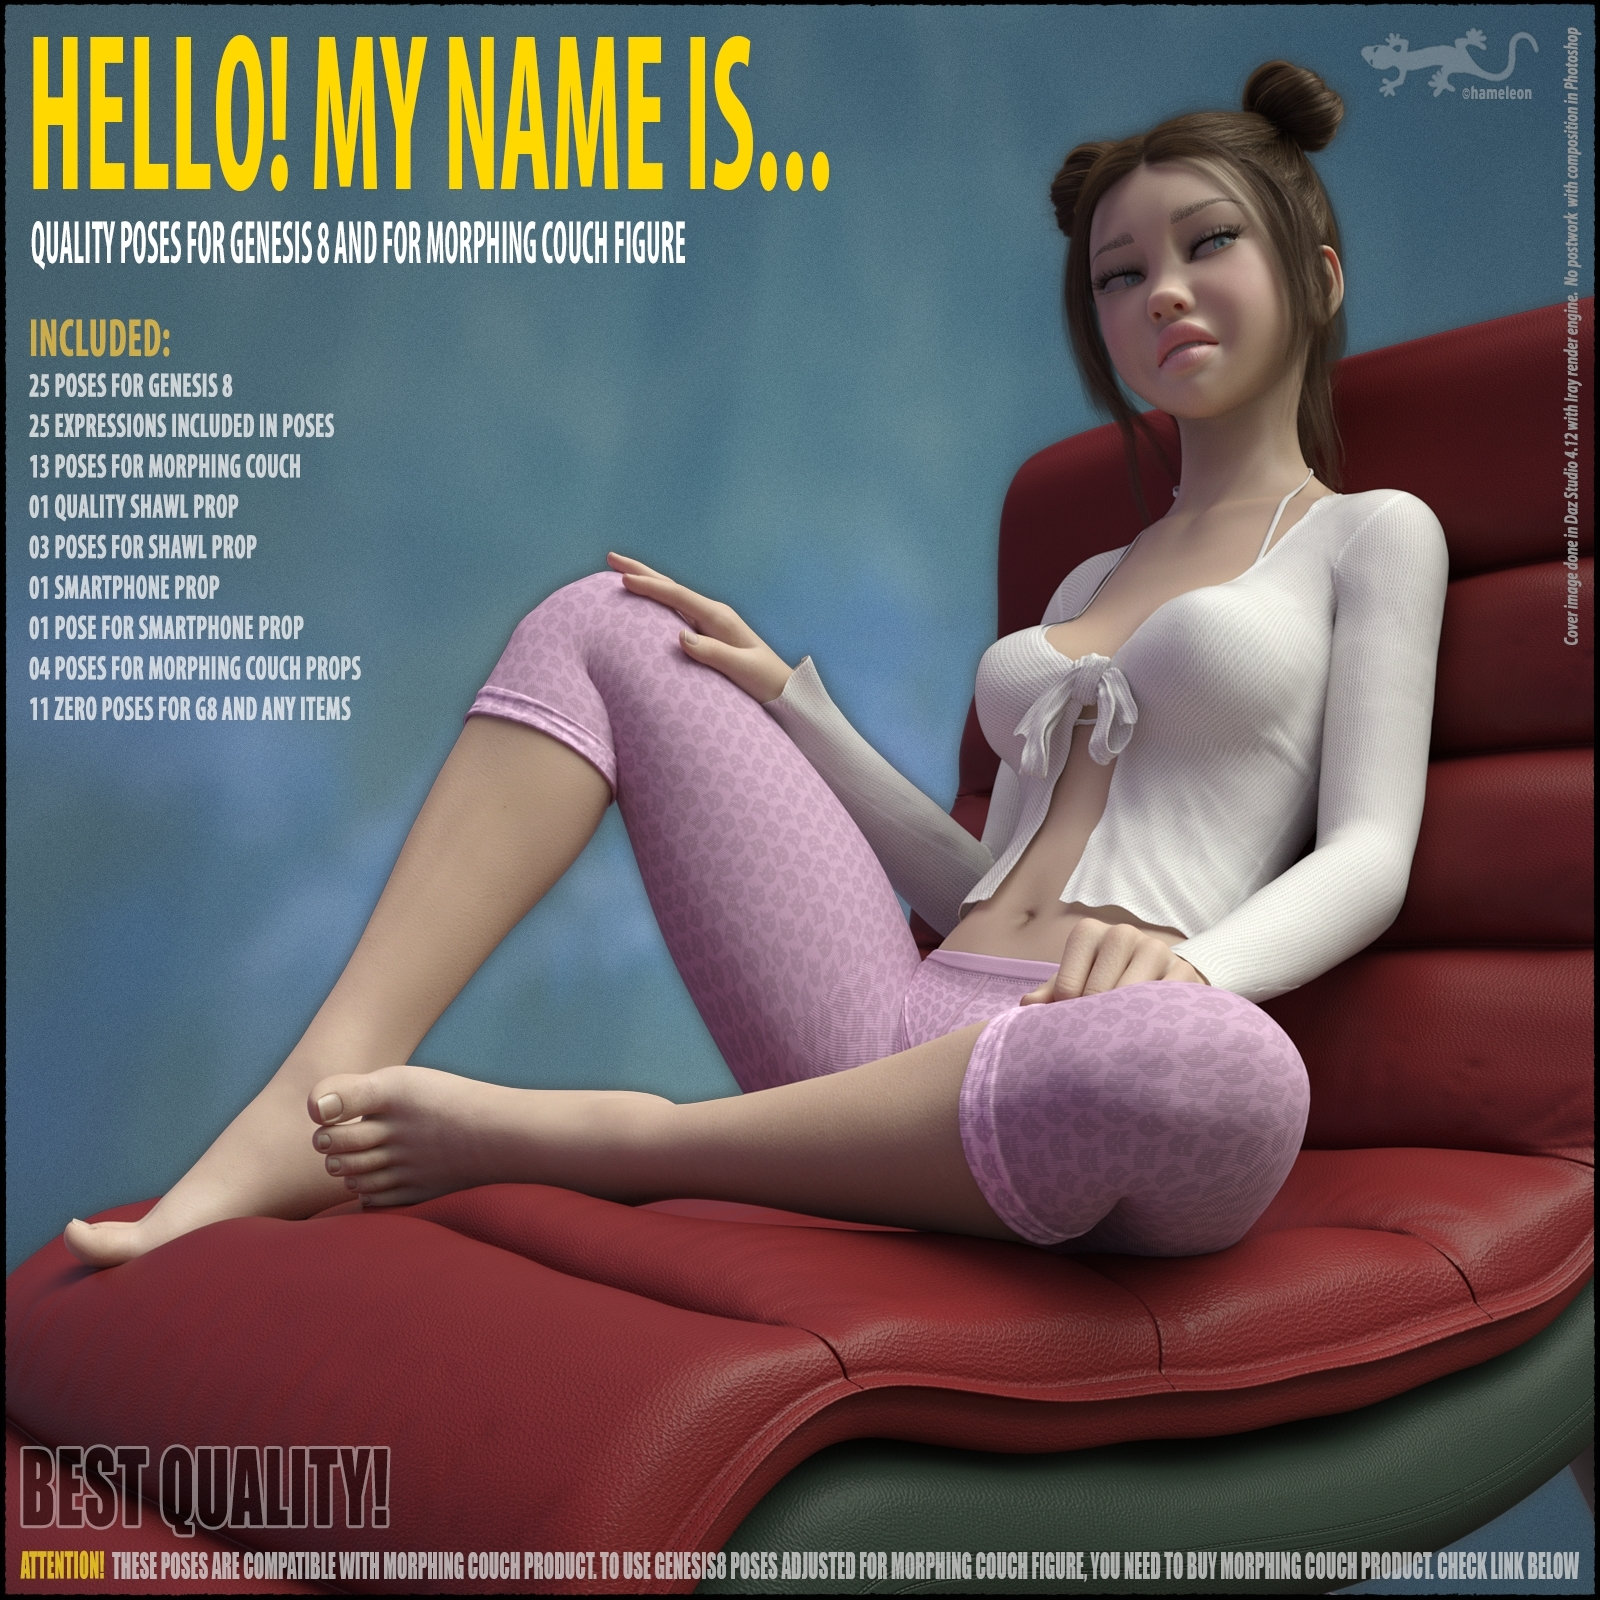 Hello! My Name Is... - Poses for Genesis 8. Part I by hameleon